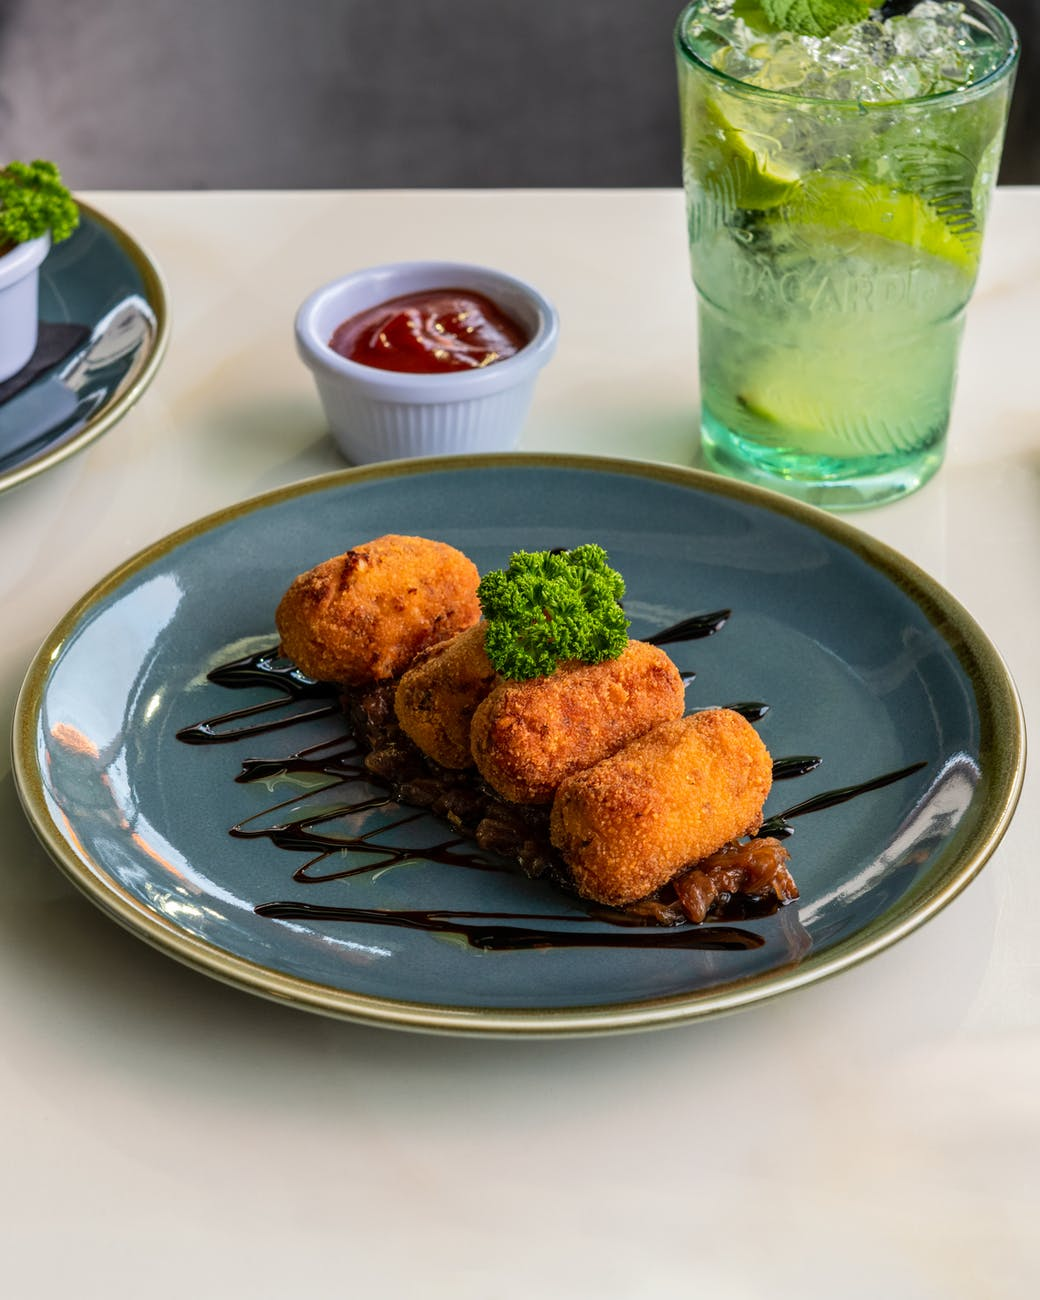 fried croquettes on blue ceramic plate